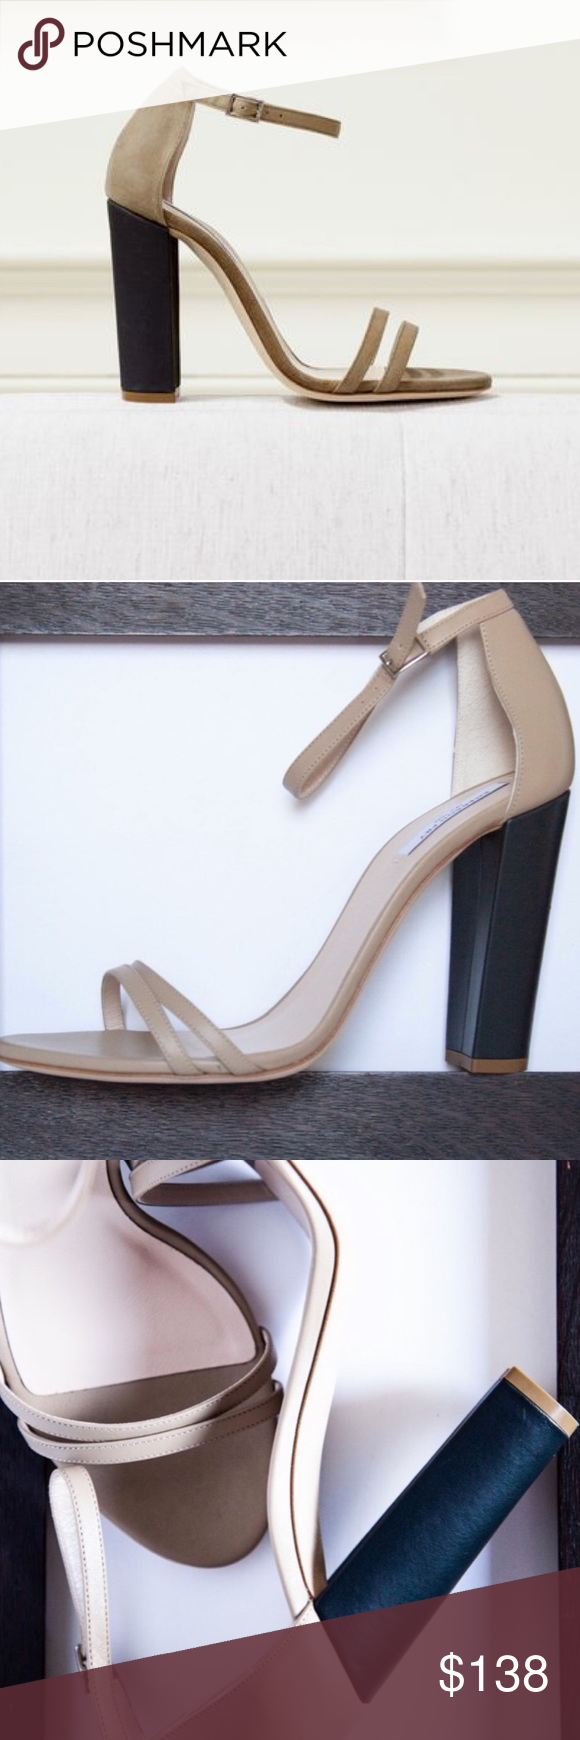 Emerson Fry Thin Strap Heel -Tan Beautiful and well made Emerson Fry thin strap heels. Narrow straps combined with a chunky heel for a more subtle color block look. Adjustable ankle strap. Leather upper and leather lined with leather wrapped heel.   Made in Italy Size 41(10.5-11) 10 3/4 toe to heel 4.5 Heel No box Emerson Fry Shoes Heels #emersonfry